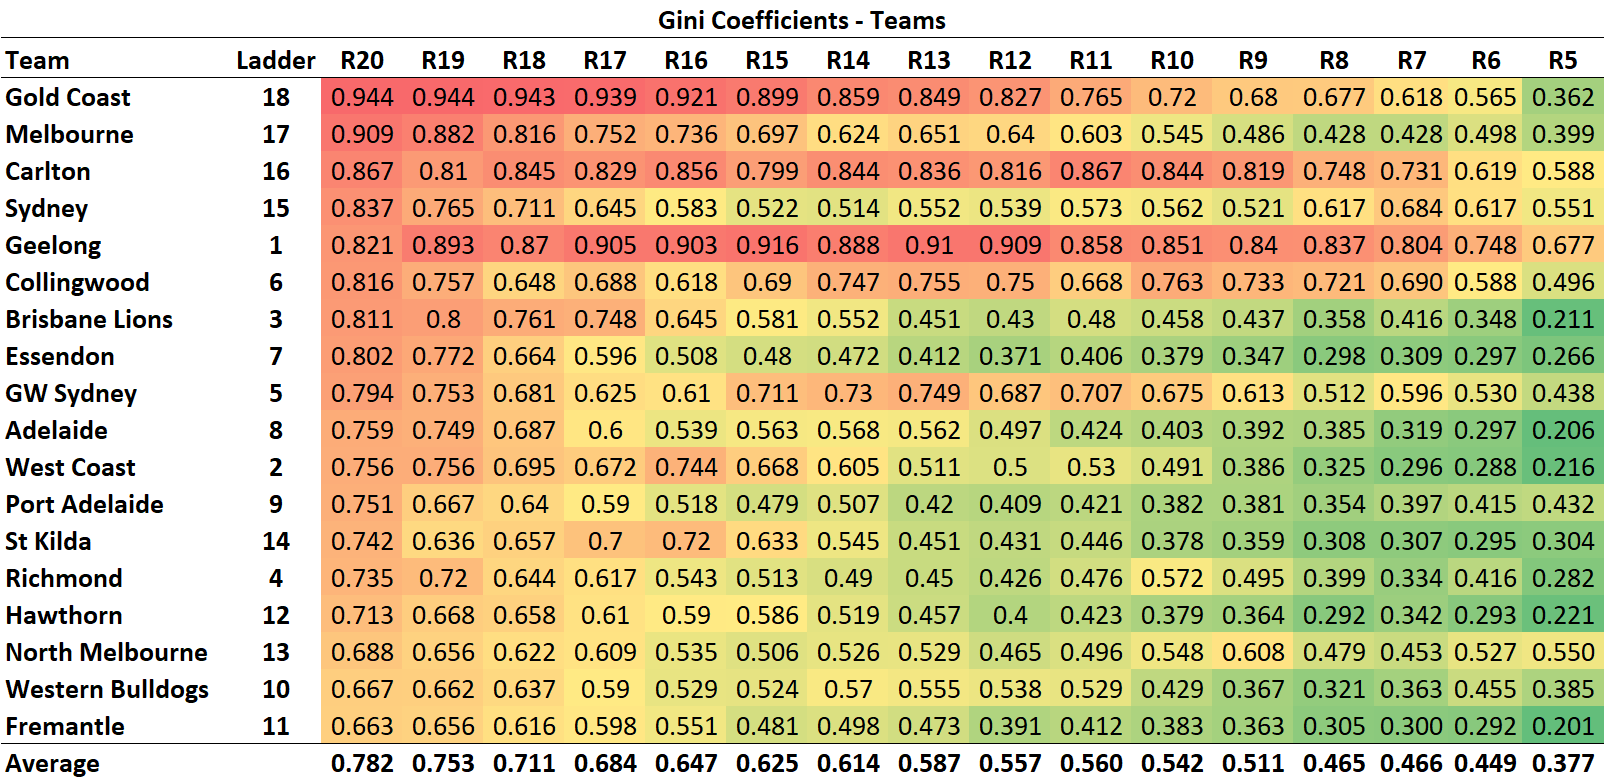 R21 - Gini - Teams.png